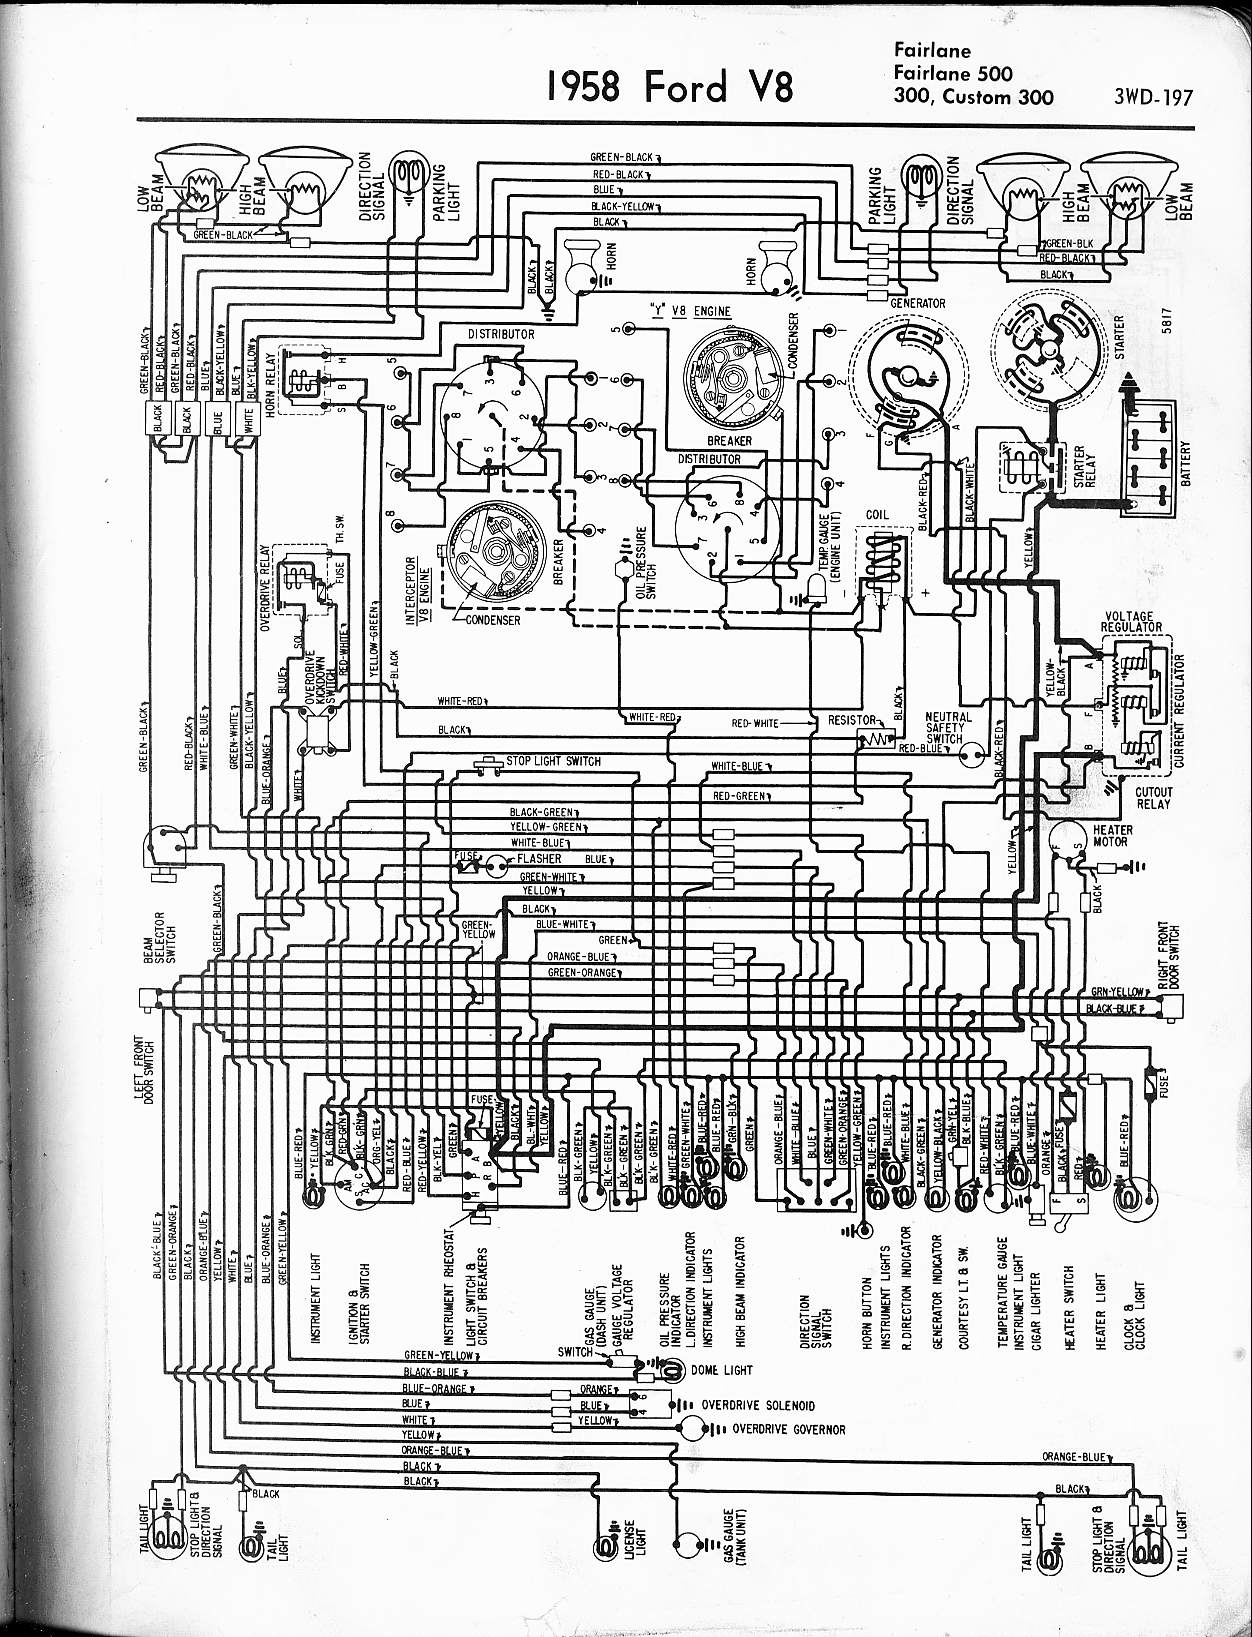 hight resolution of 57 65 ford wiring diagrams ford alternator diagrams 1958 v8 fairlane 500 300